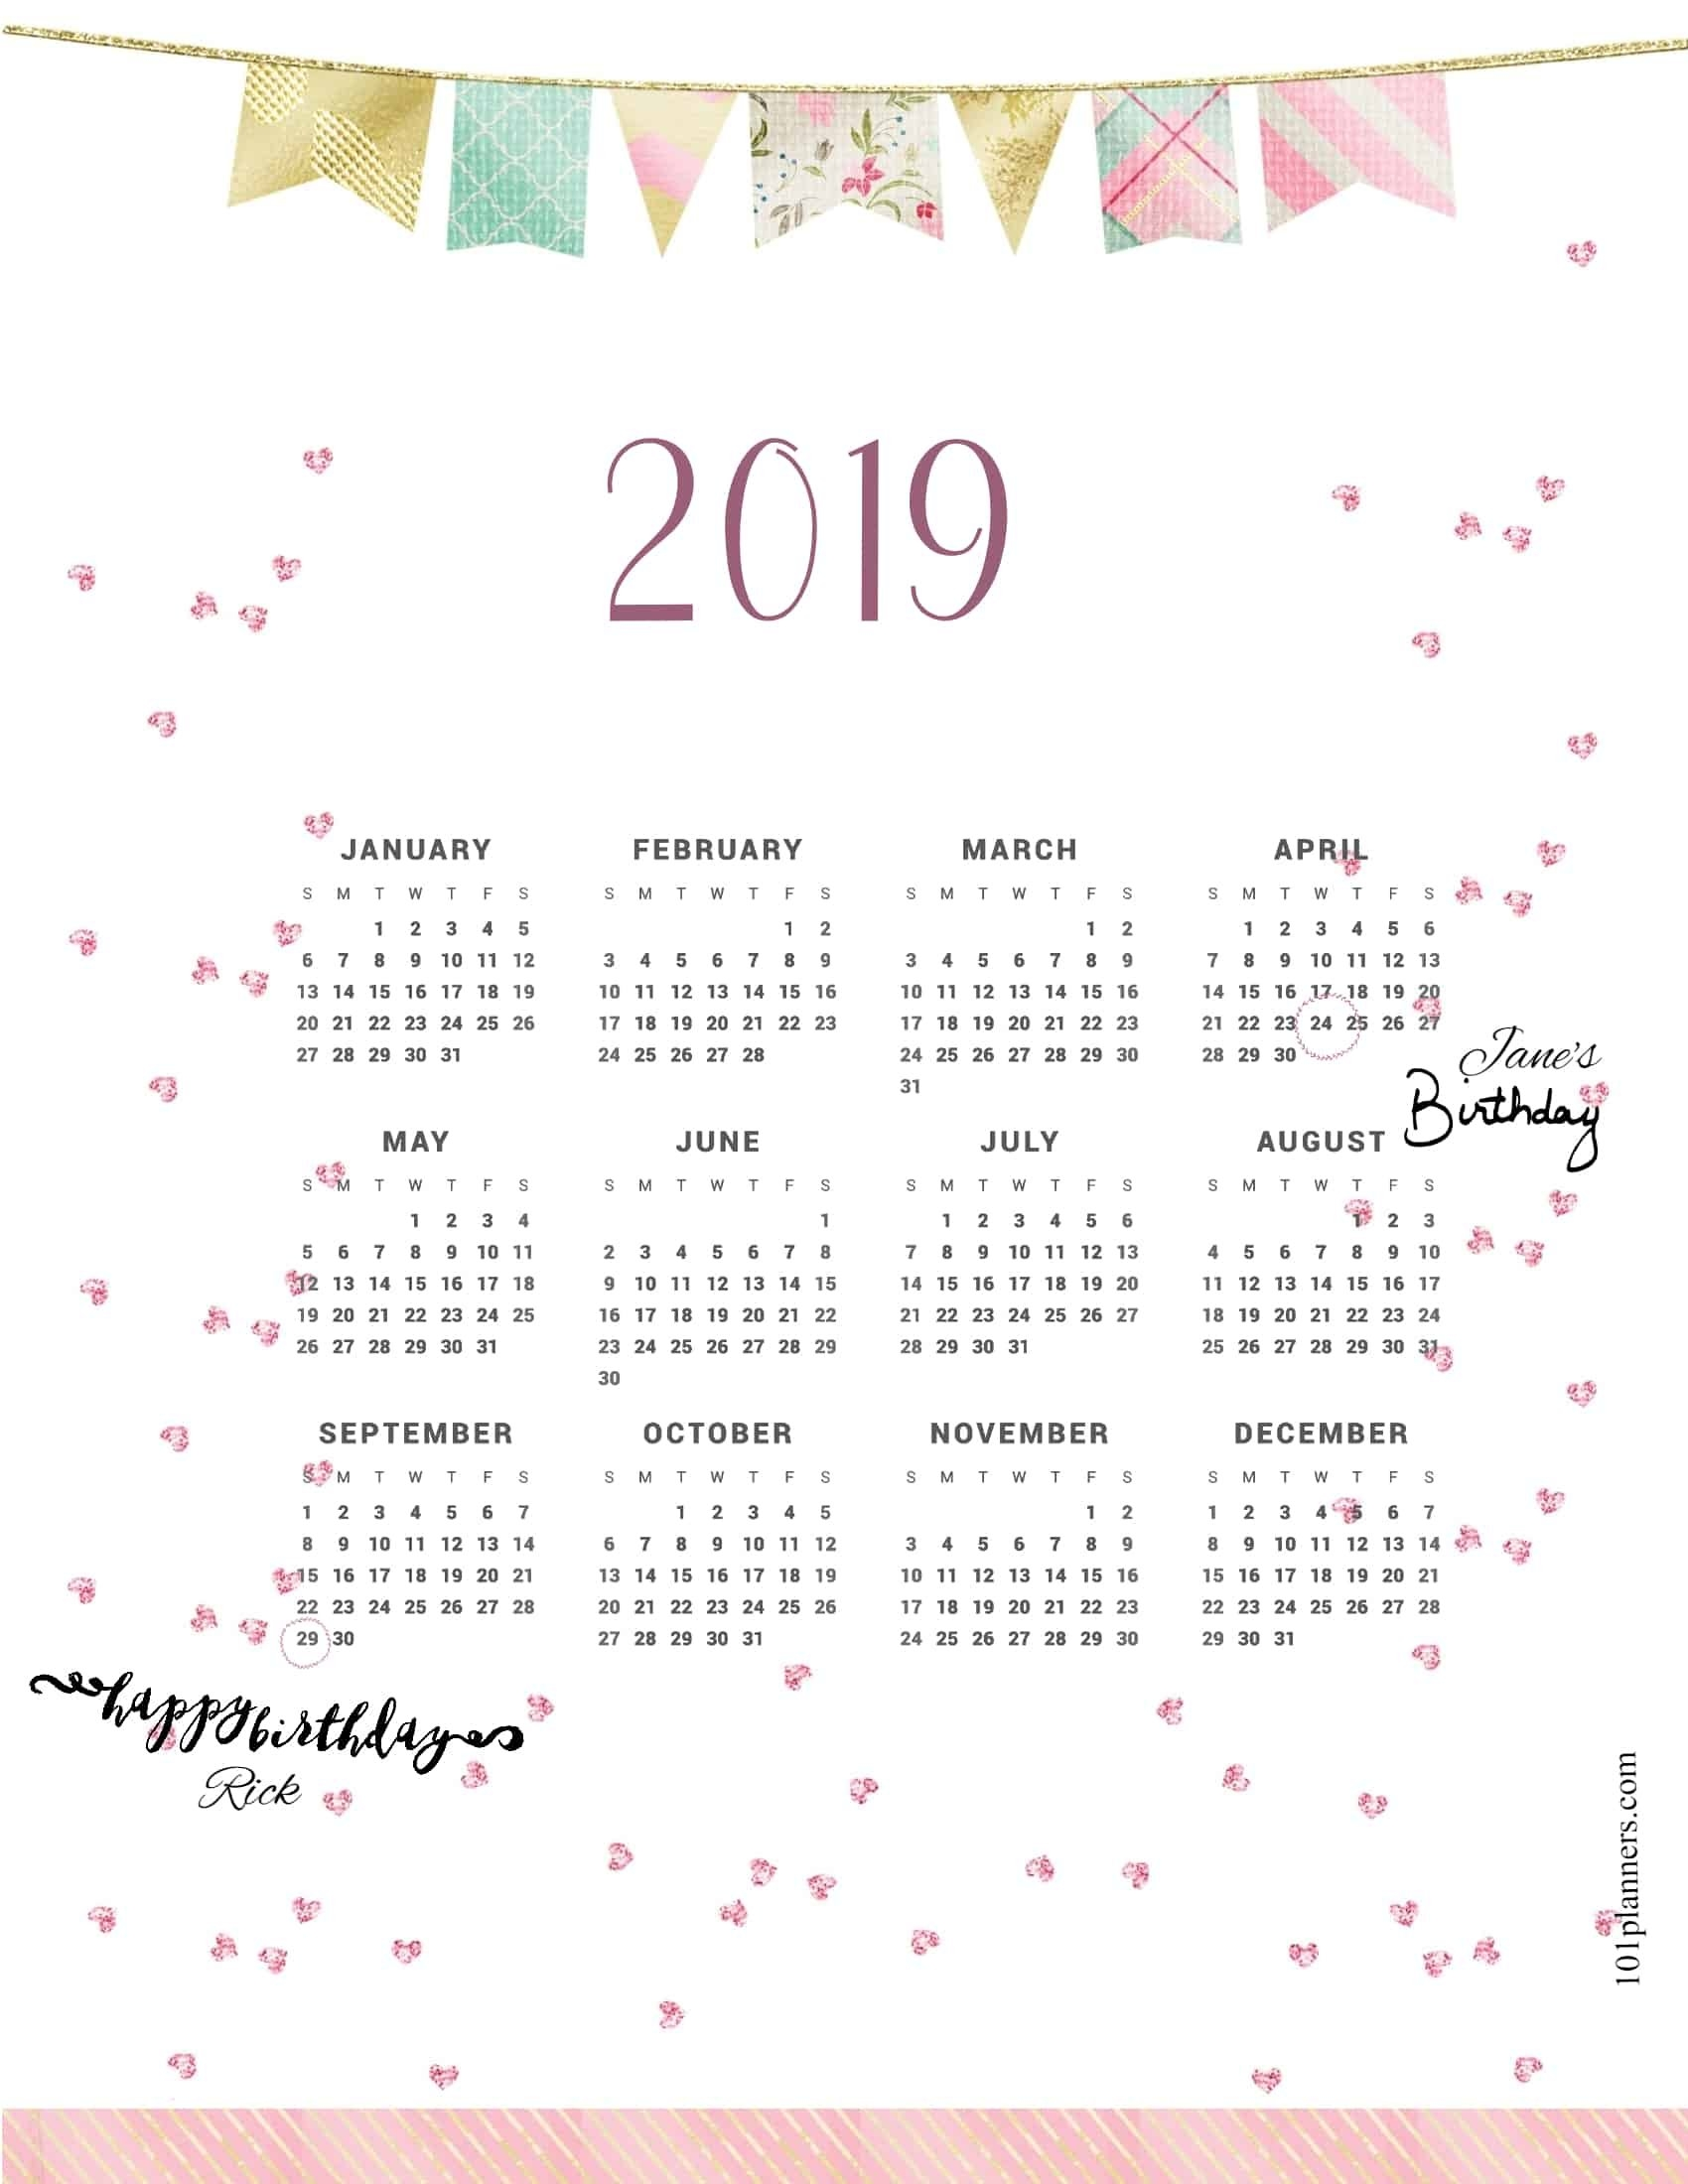 Free Printable 2019 Yearly Calendar At A Glance | 101 Backgrounds At A Glance Calendar 2019